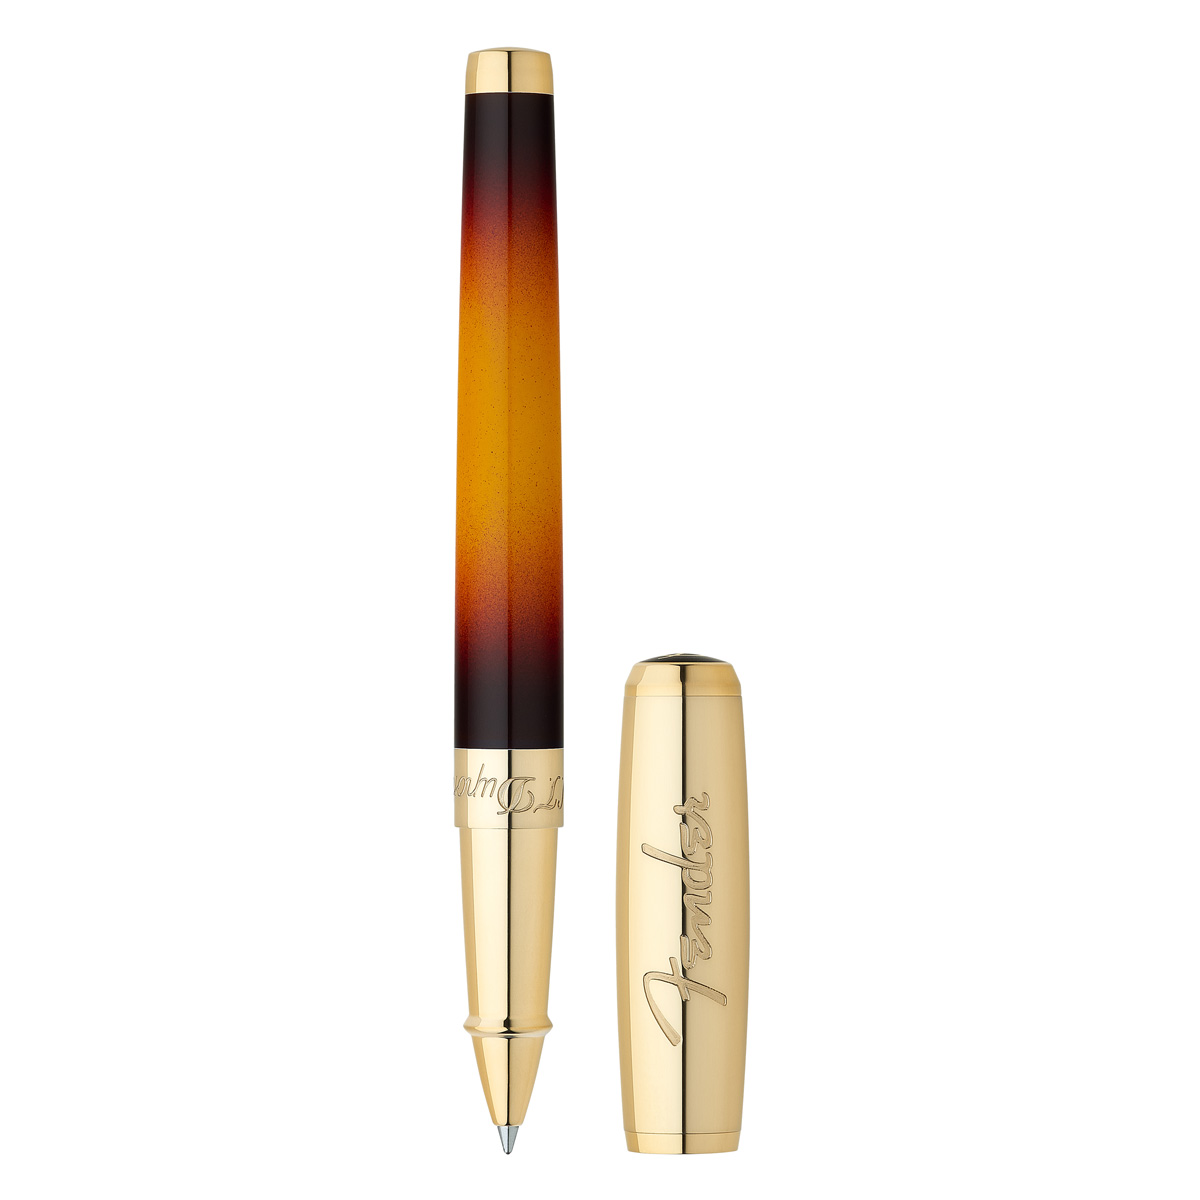 ST Dupont Fender Line 2 Rollerball Pen - Sunburst Lacquer - Gold Finish - Limited Edition